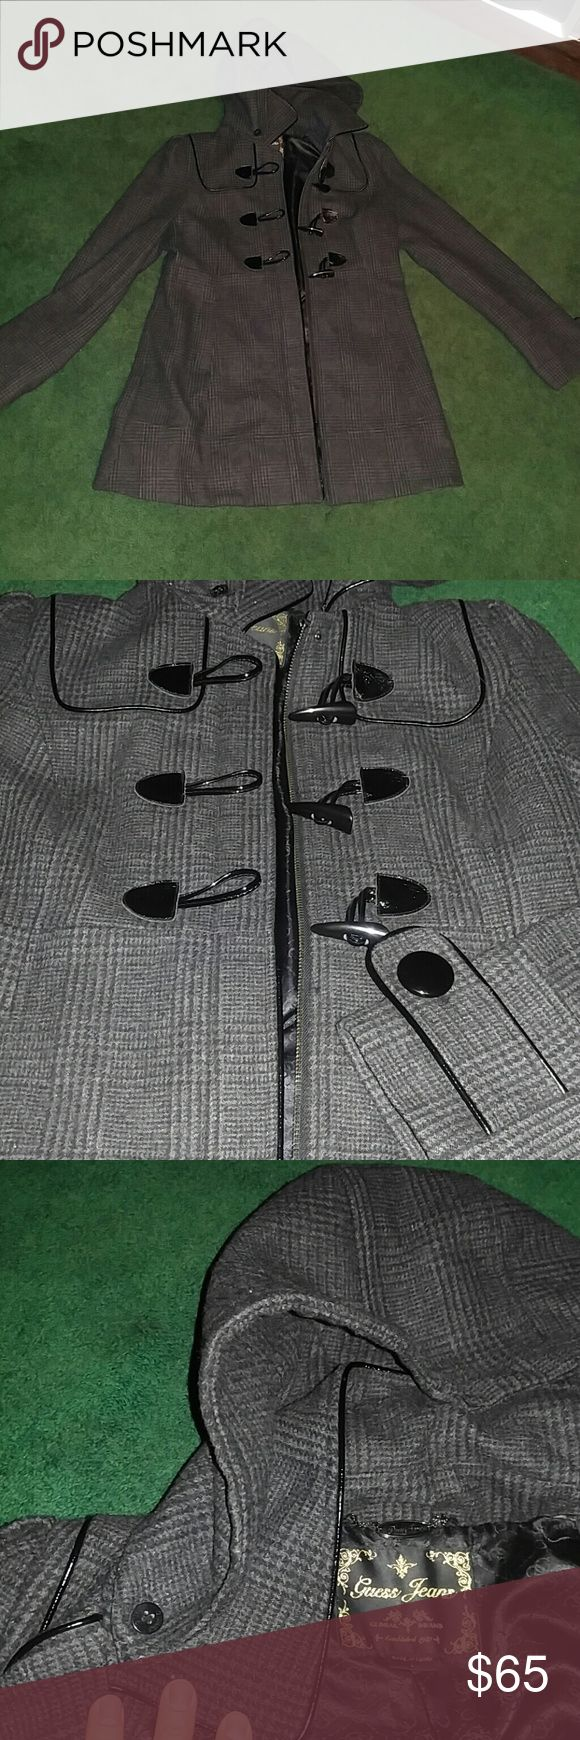 """Wool Dress Coat Beautiful charcoal (dark as shown in first pic) coat with toggle and zipper closure and black faux leather trimming. Detatchable hood, falls around the mid thigh on me and I am 5'9"""". This is a nice winter coat, though it's not super thick. Only problem other than some minor pilling is that some of the seams on the inside of the coat and inside the pockets are coming undone a little, shown in the last picture. Other than that it's a beautiful coat! I love it, just doesn't fit…"""